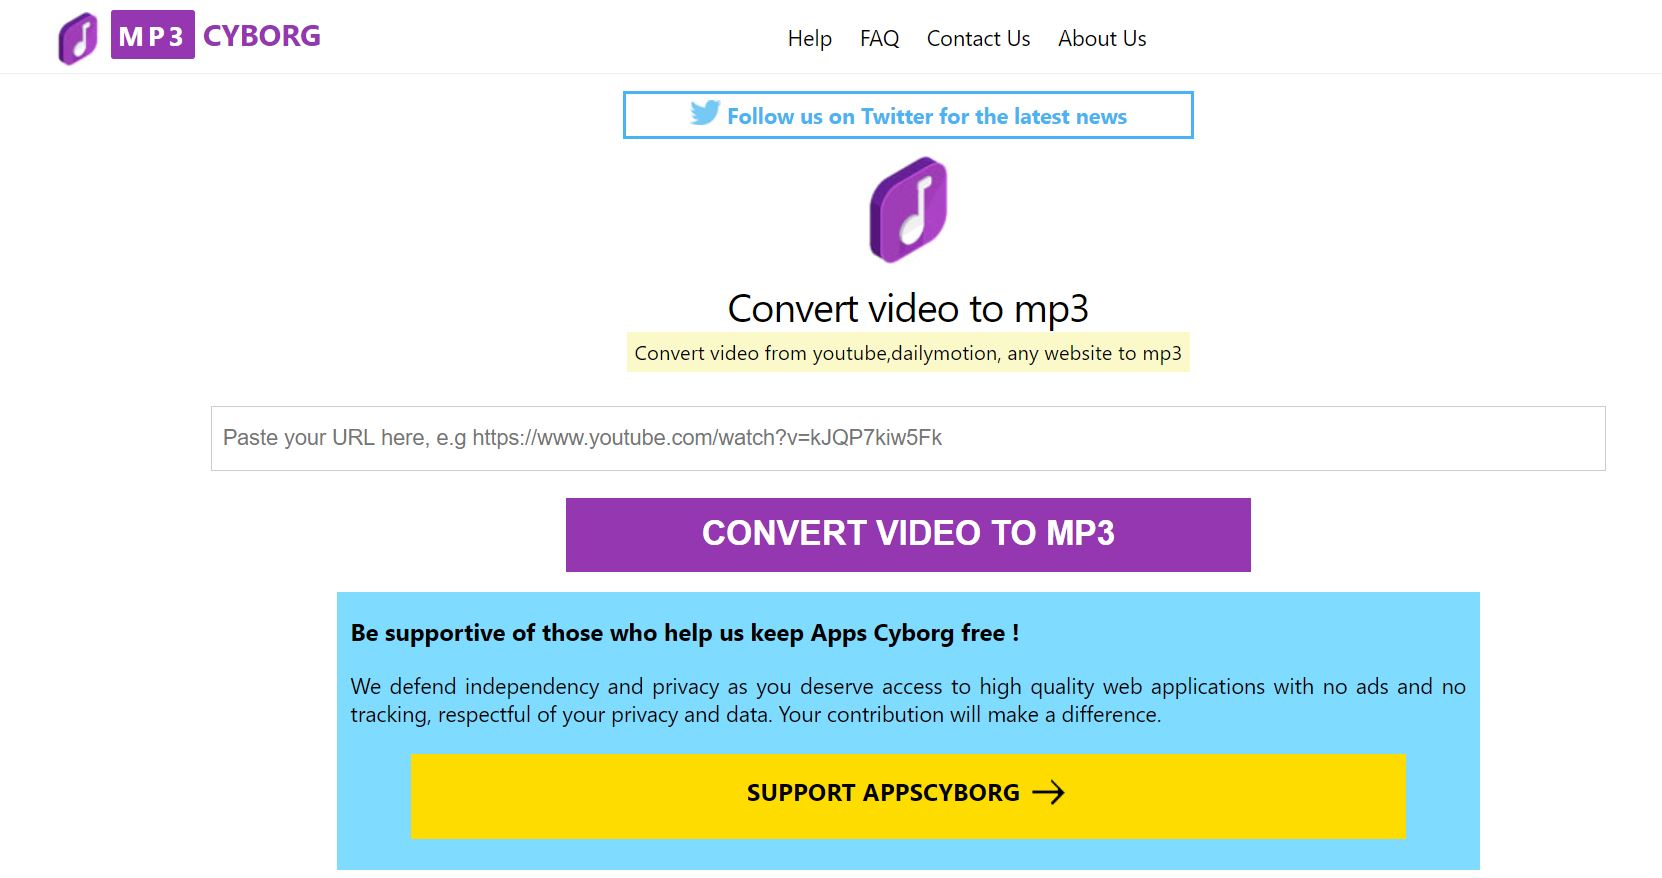 YouTube to MP3 - The Top 7 Best YouTube to MP3 Converters - mp3 cyborg.